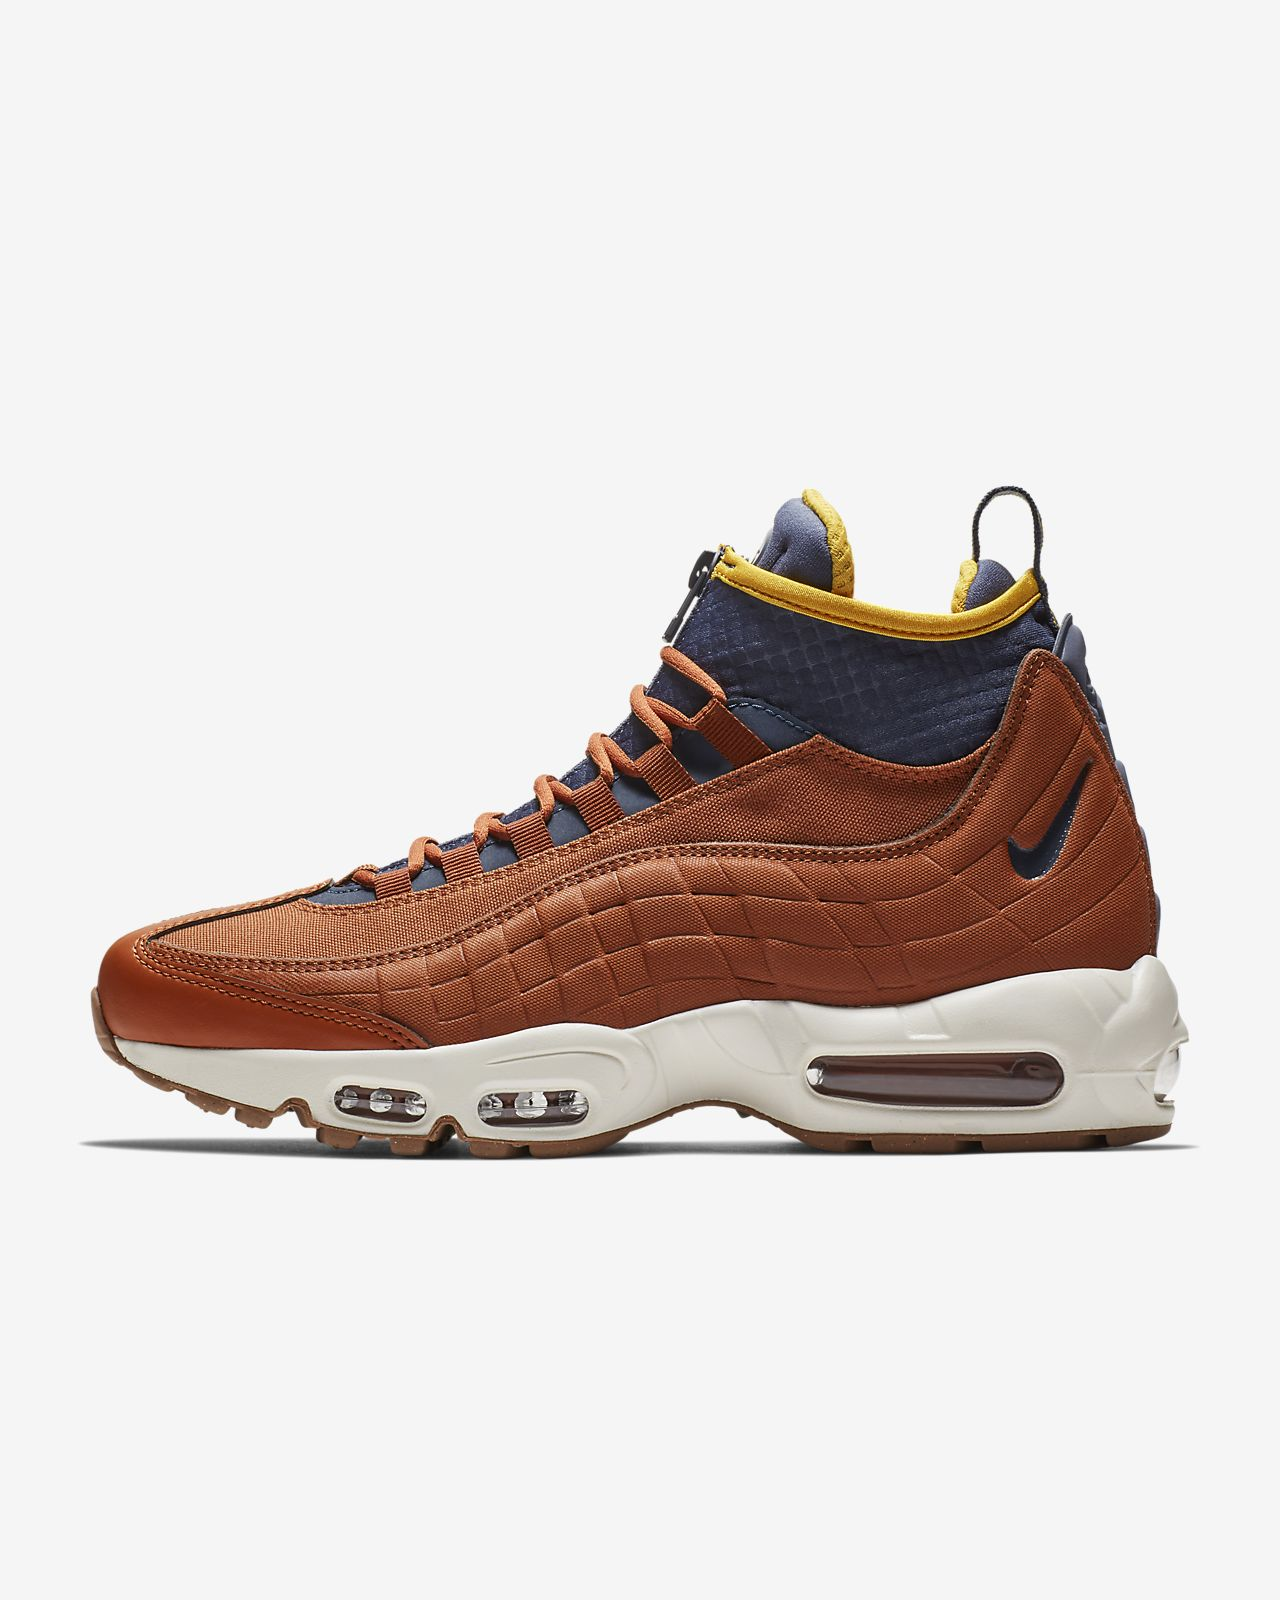 Pour Homme Be 95 Air Botte Sneakerboot Nike Max wqnX1Yz